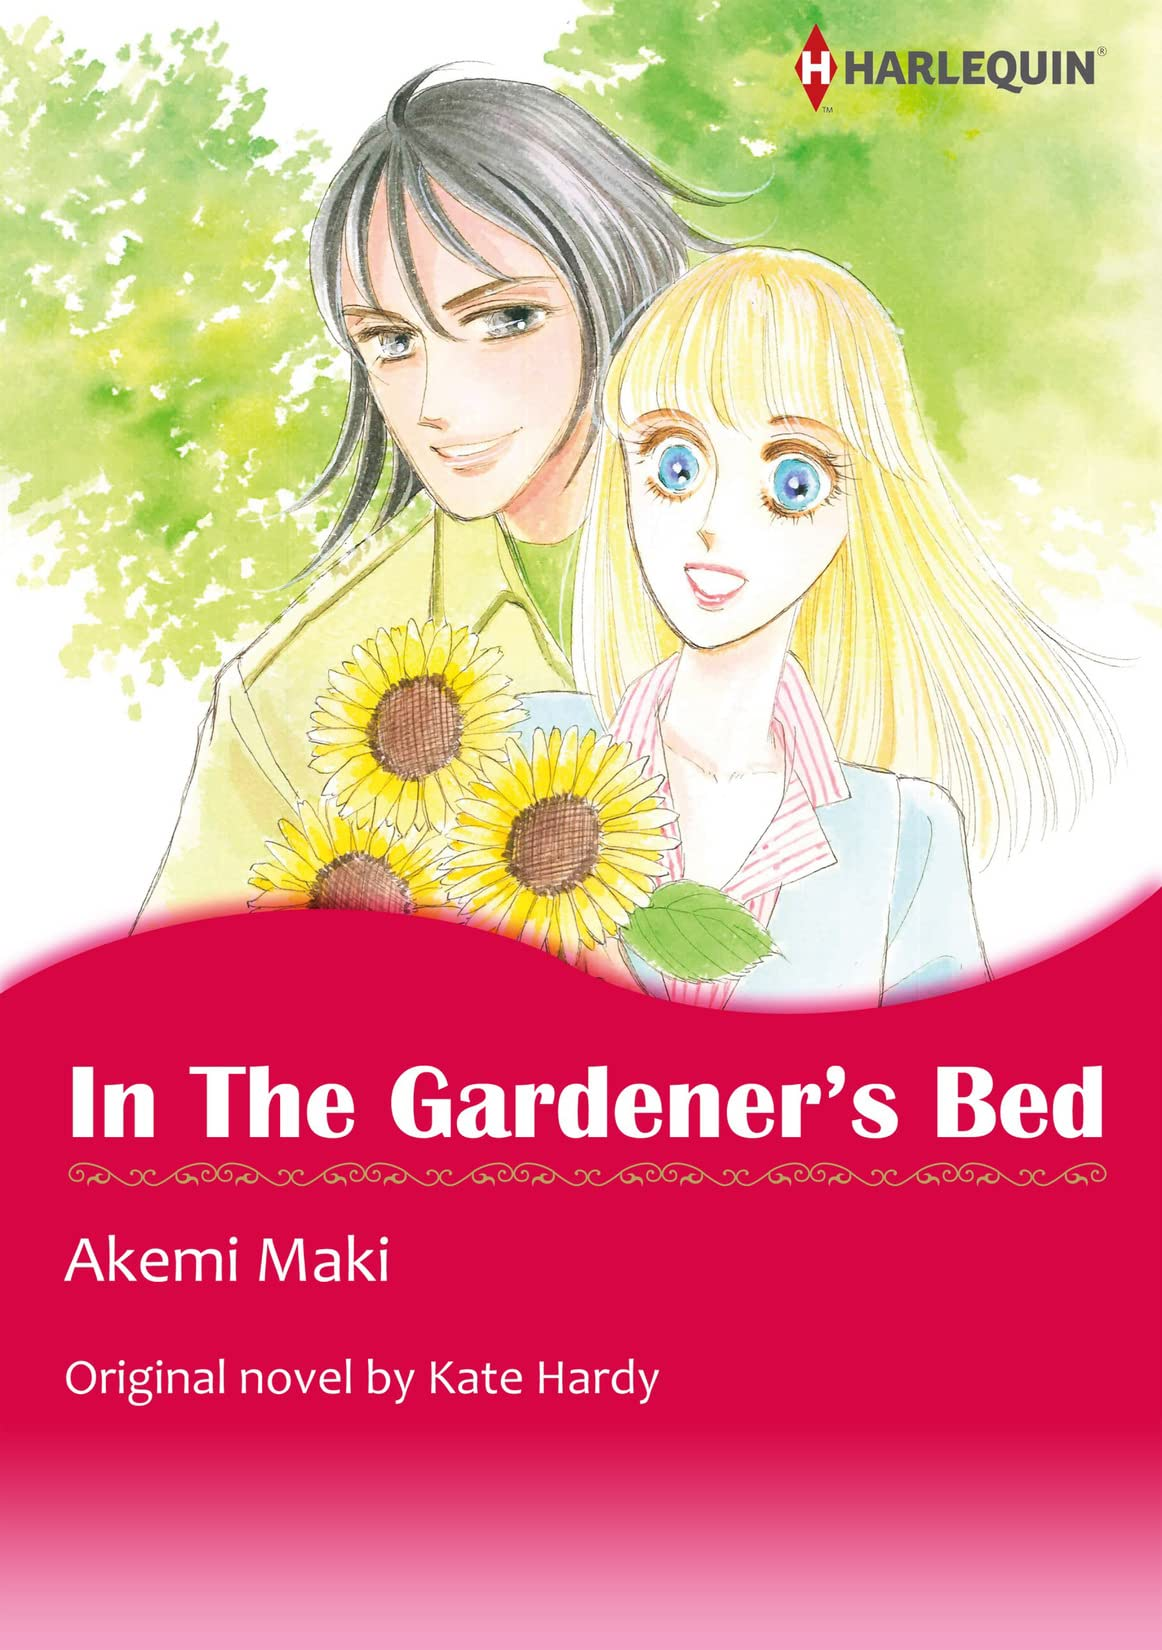 In The Gardener's Bed